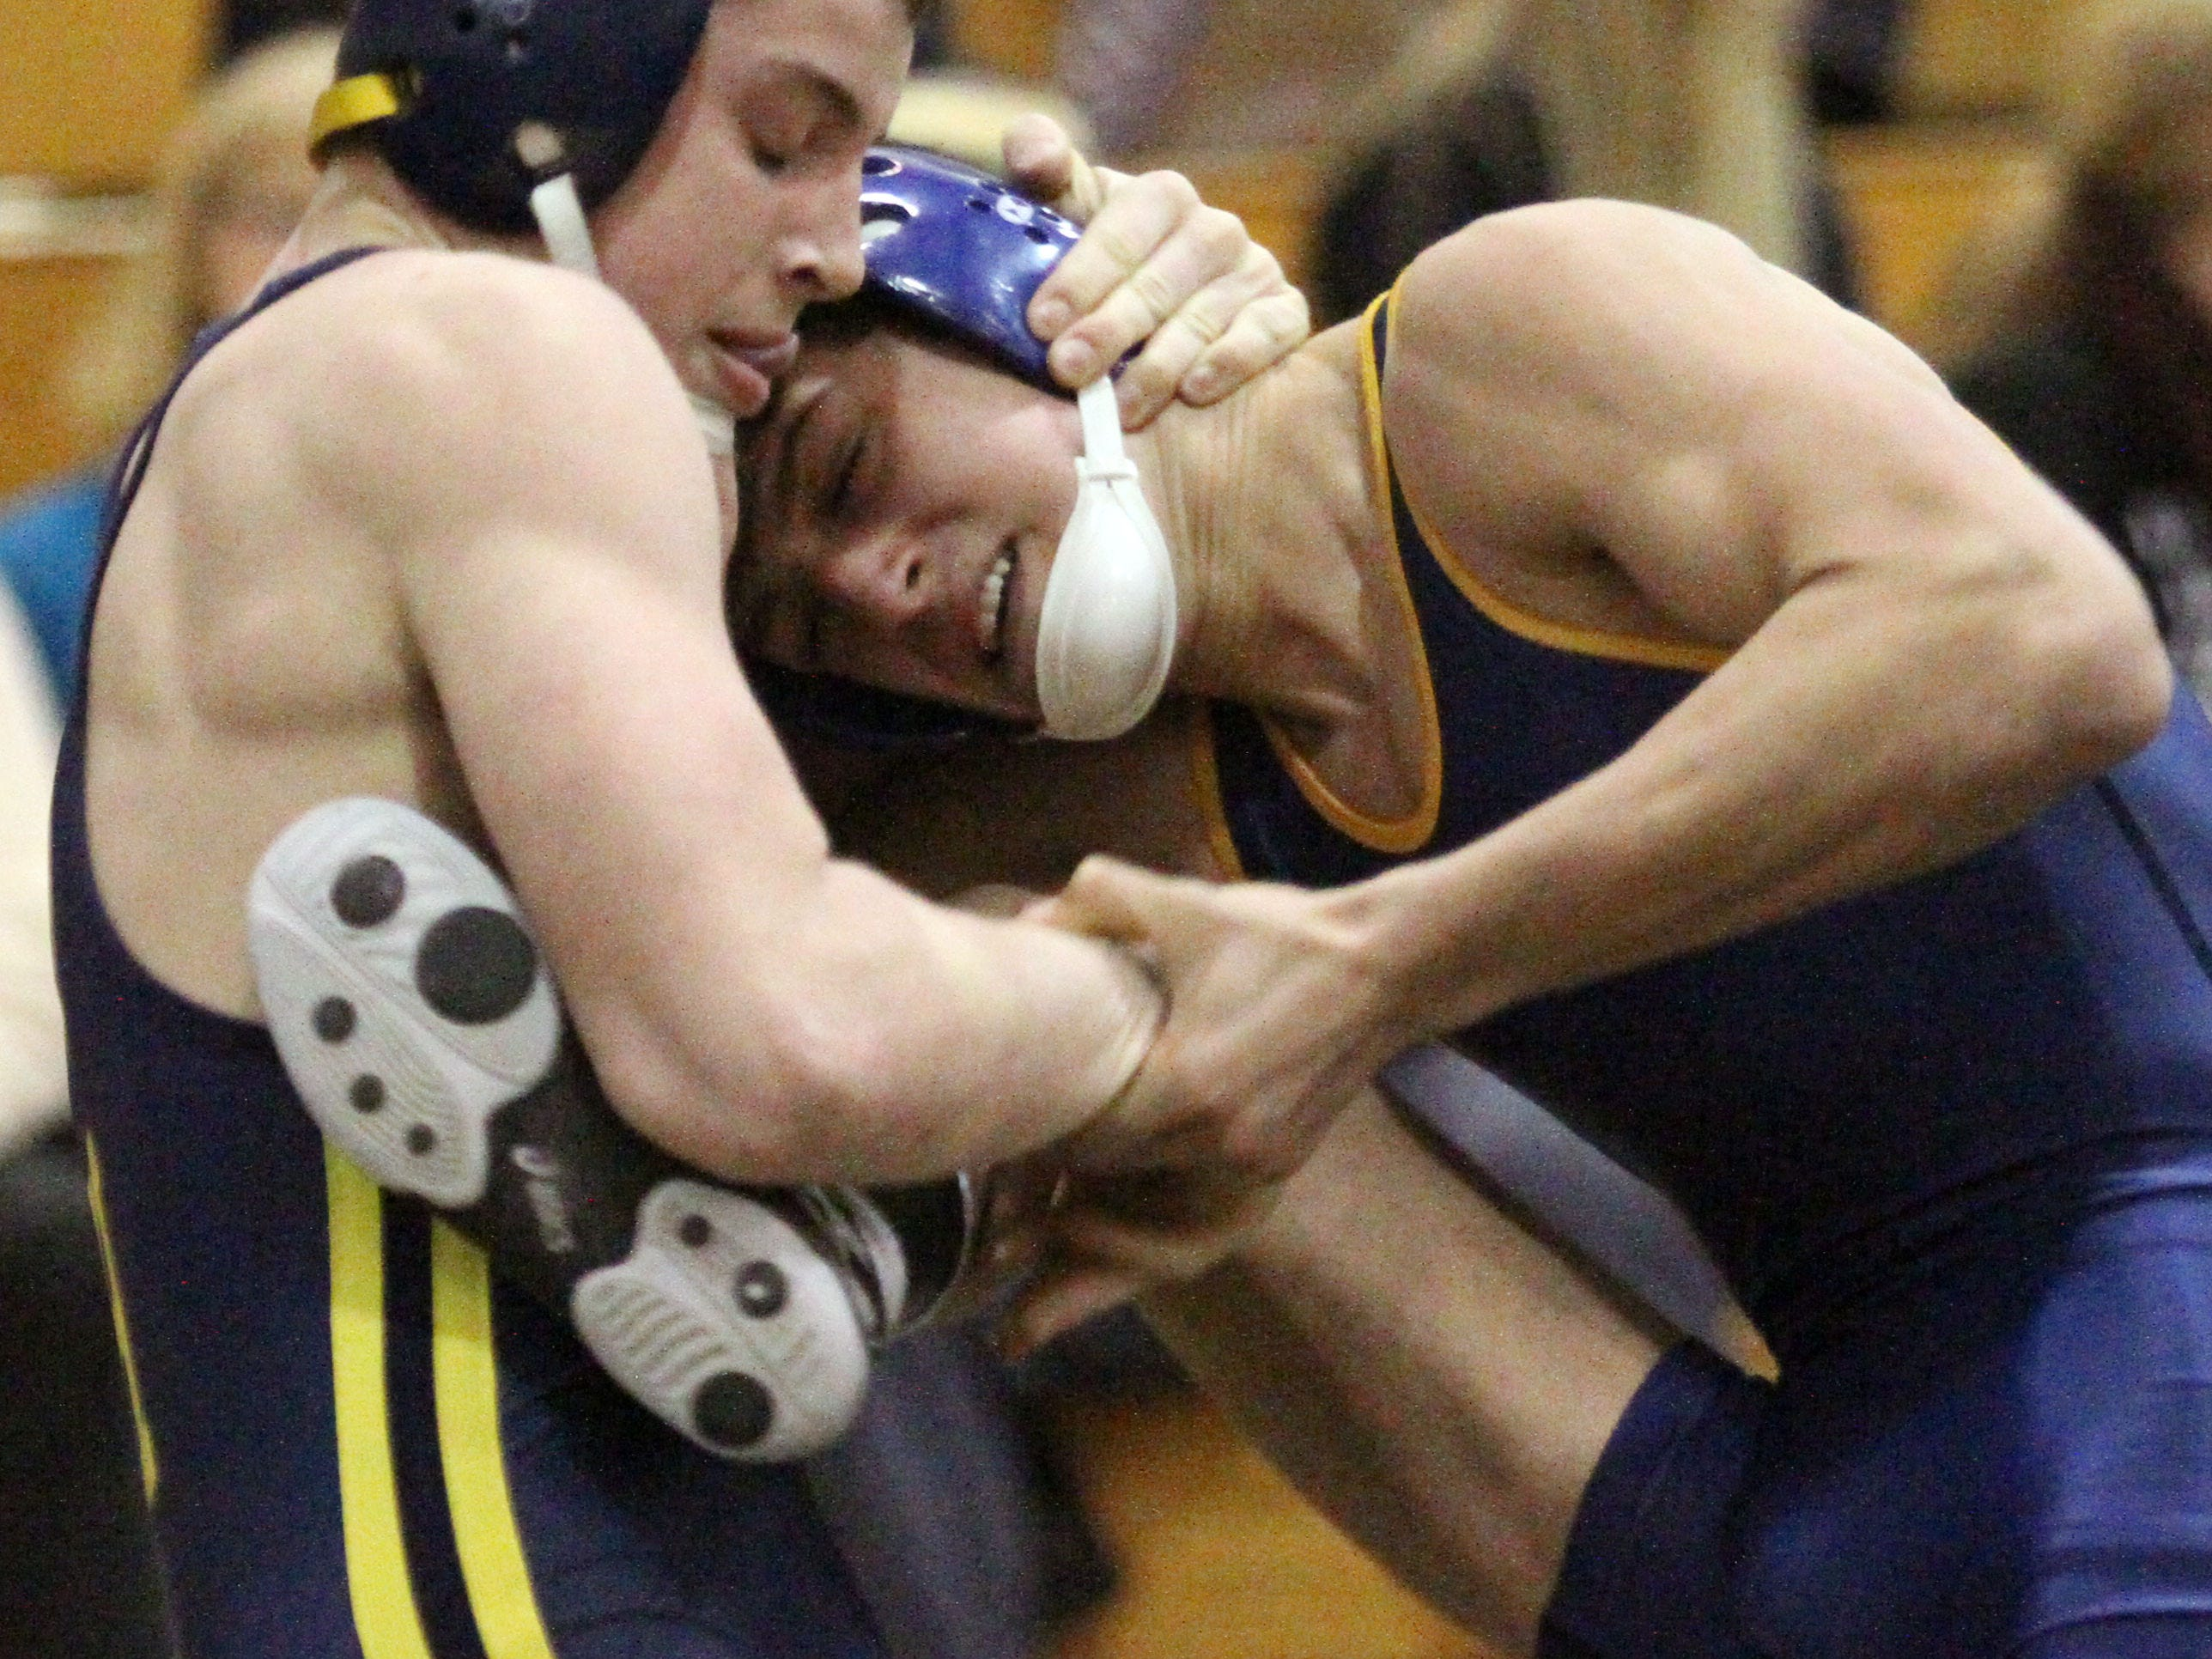 Hartland's Nick DiNoble, left, beat Clarkston's Jake Calvano by an 8-2 decision at 140 pounds in Wednesday's regional semifinals.